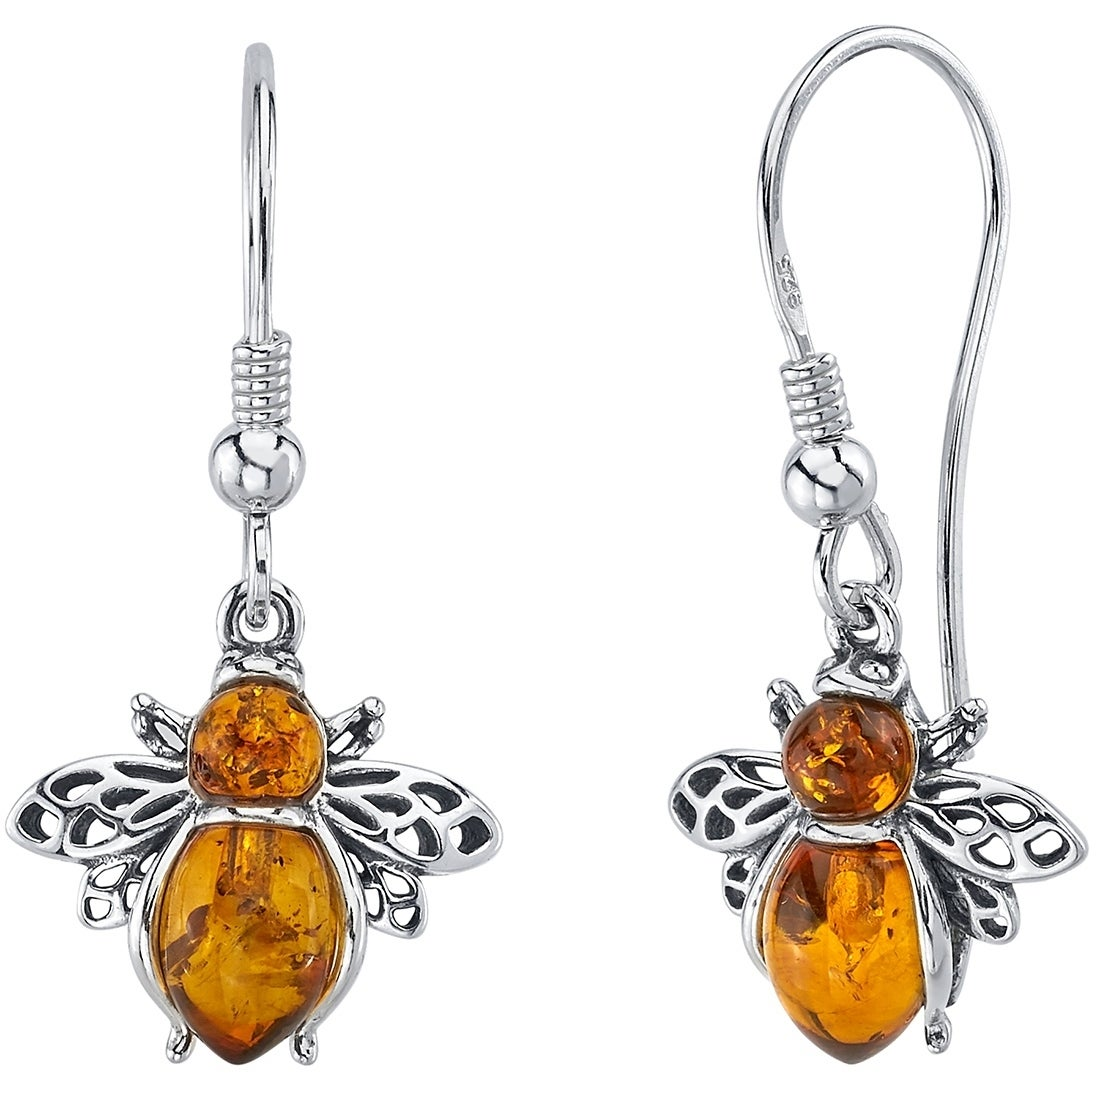 Details about  /BALTIC AMBER STERLING SILVER DANGLE EARRINGS